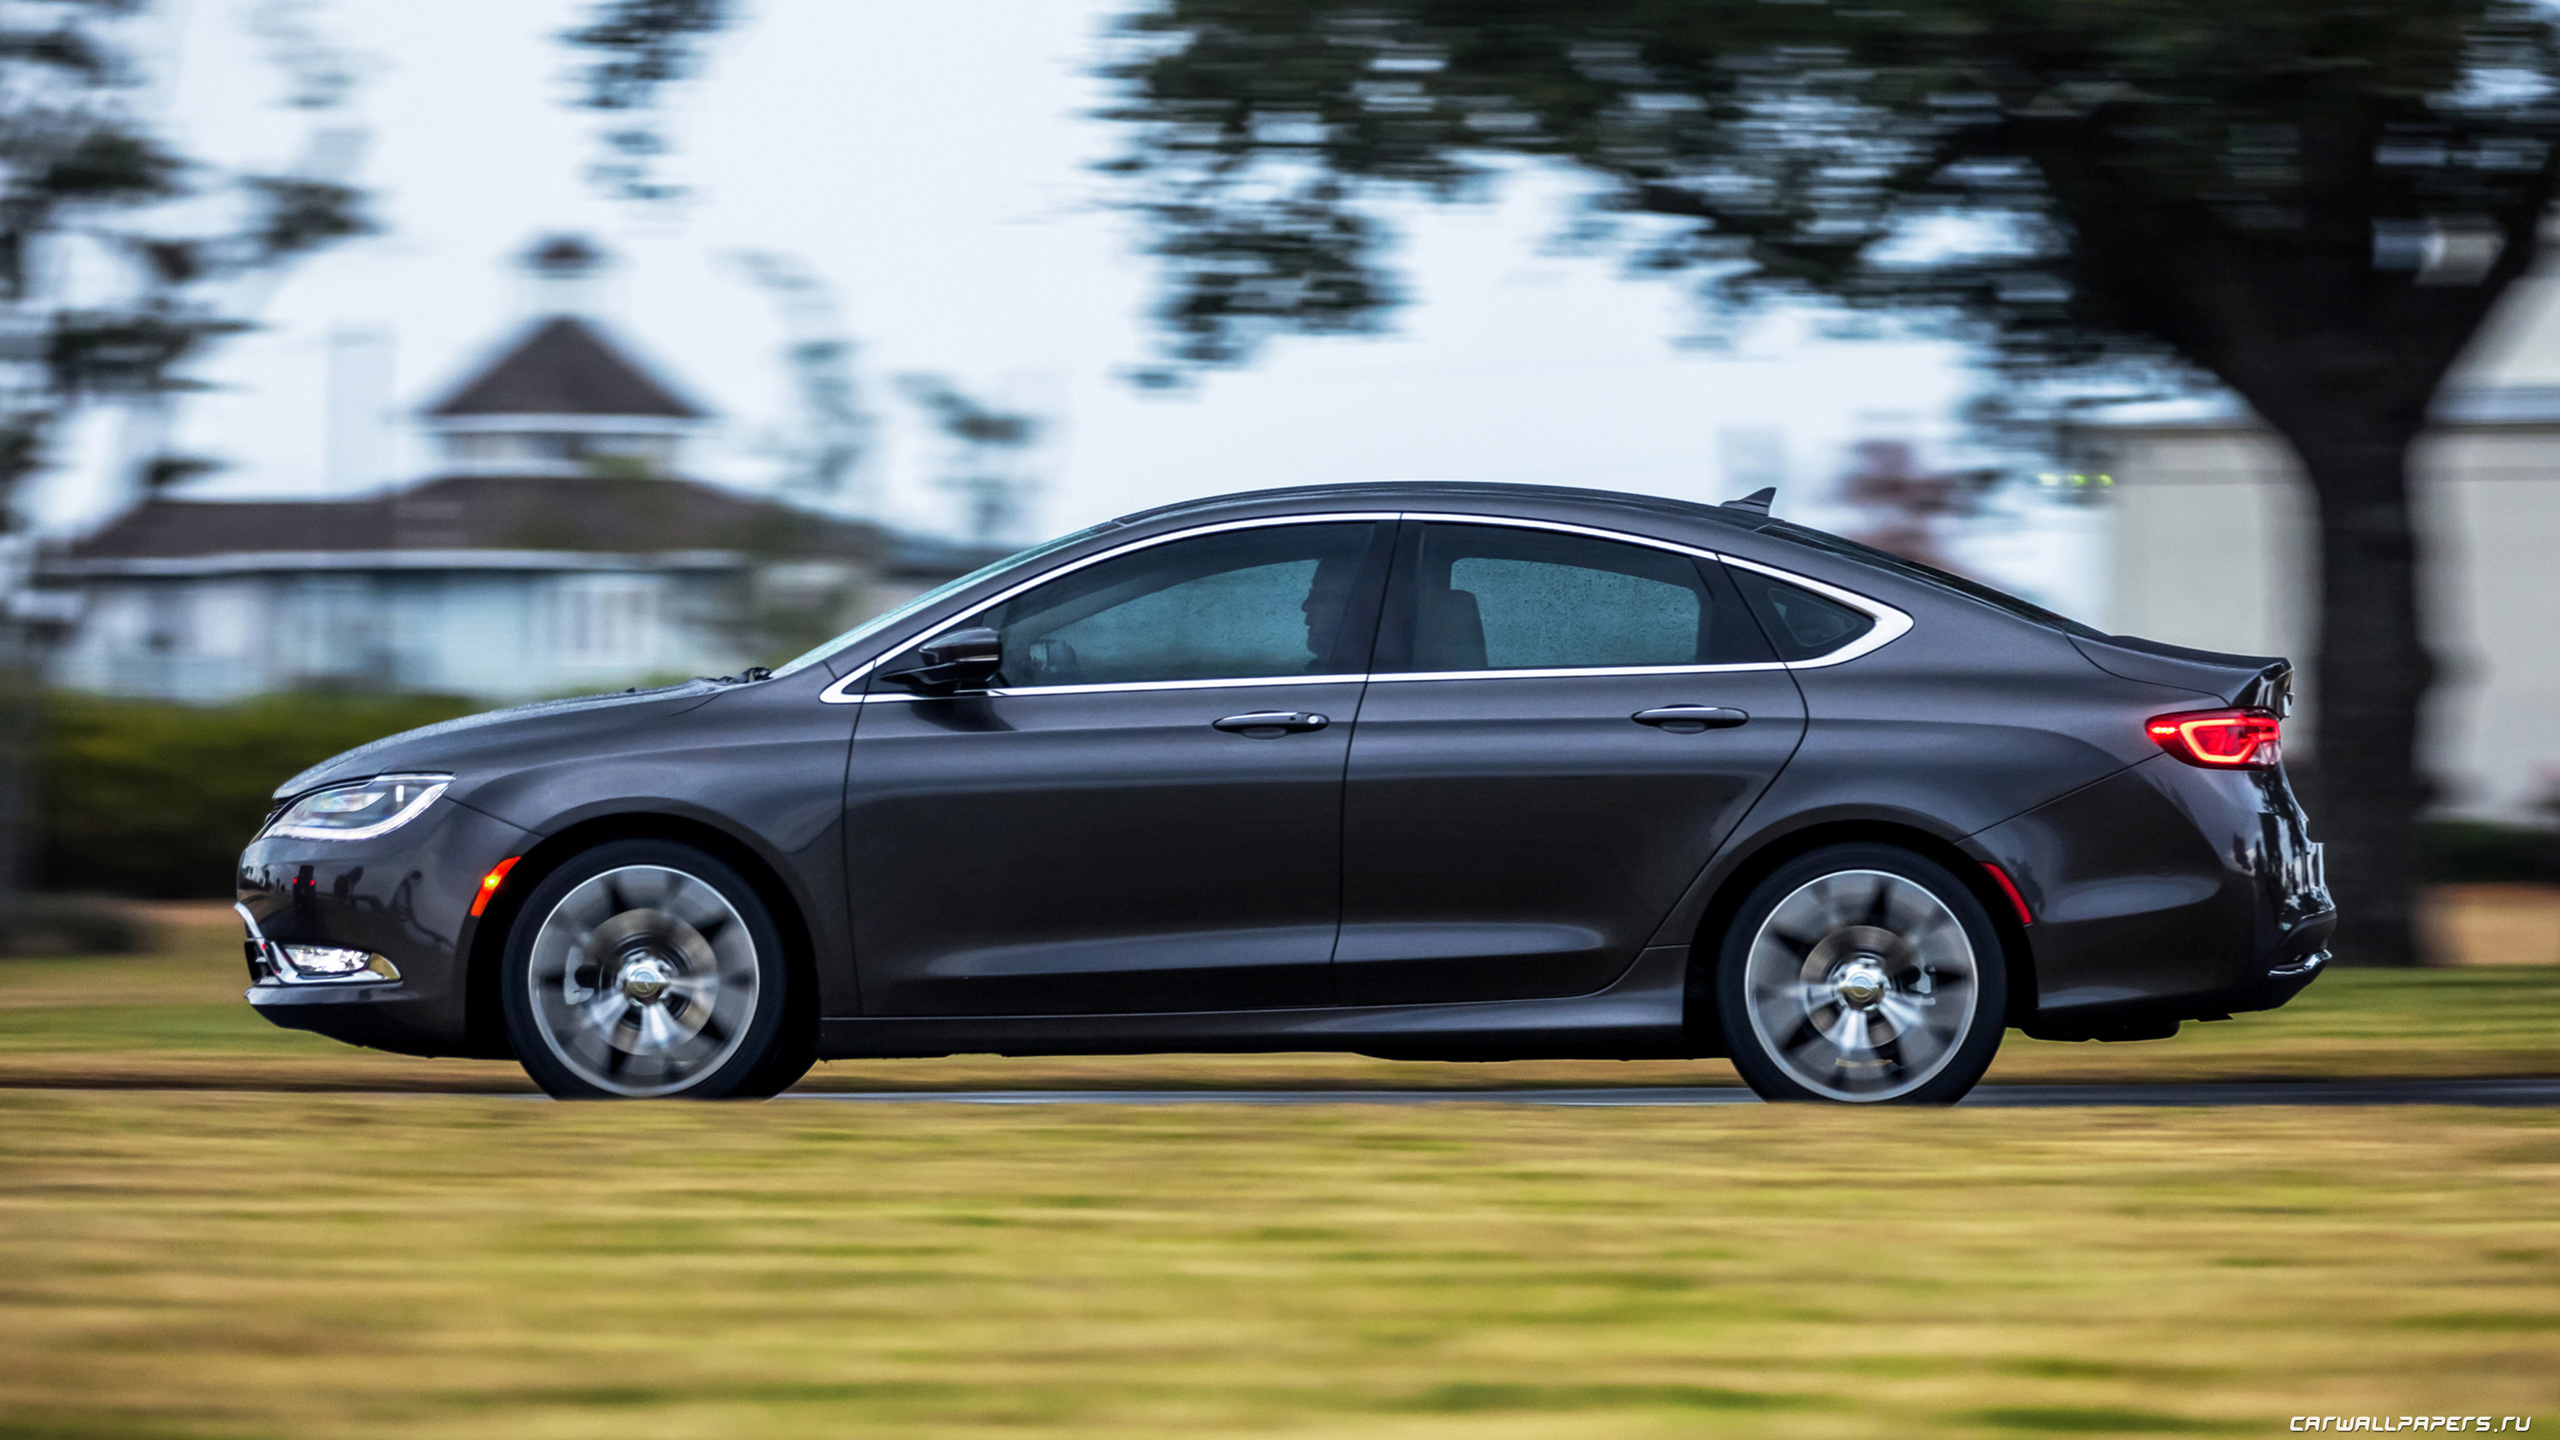 2015 Chrysler 200 Parts and Accessories Automotive